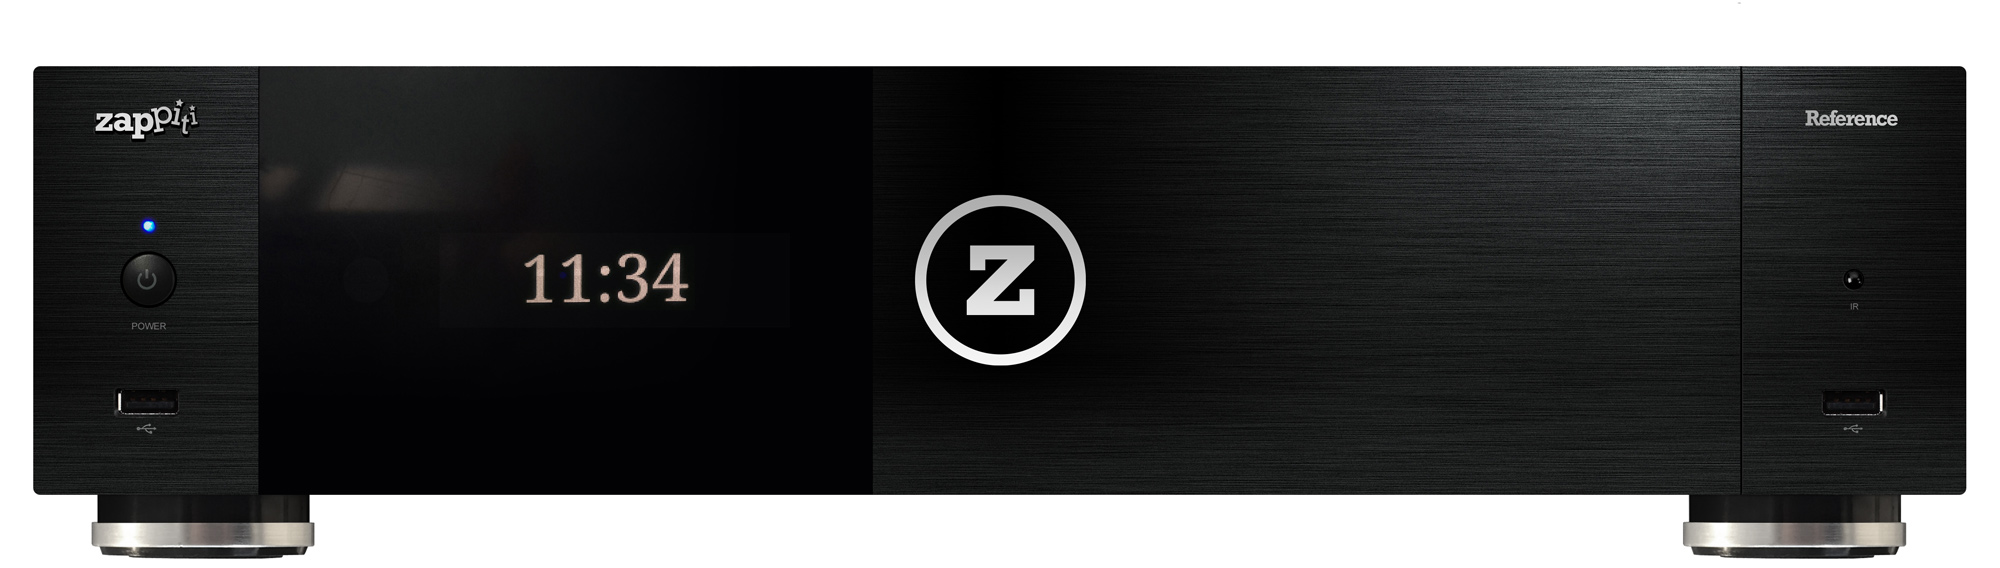 Zappiti Reference Front